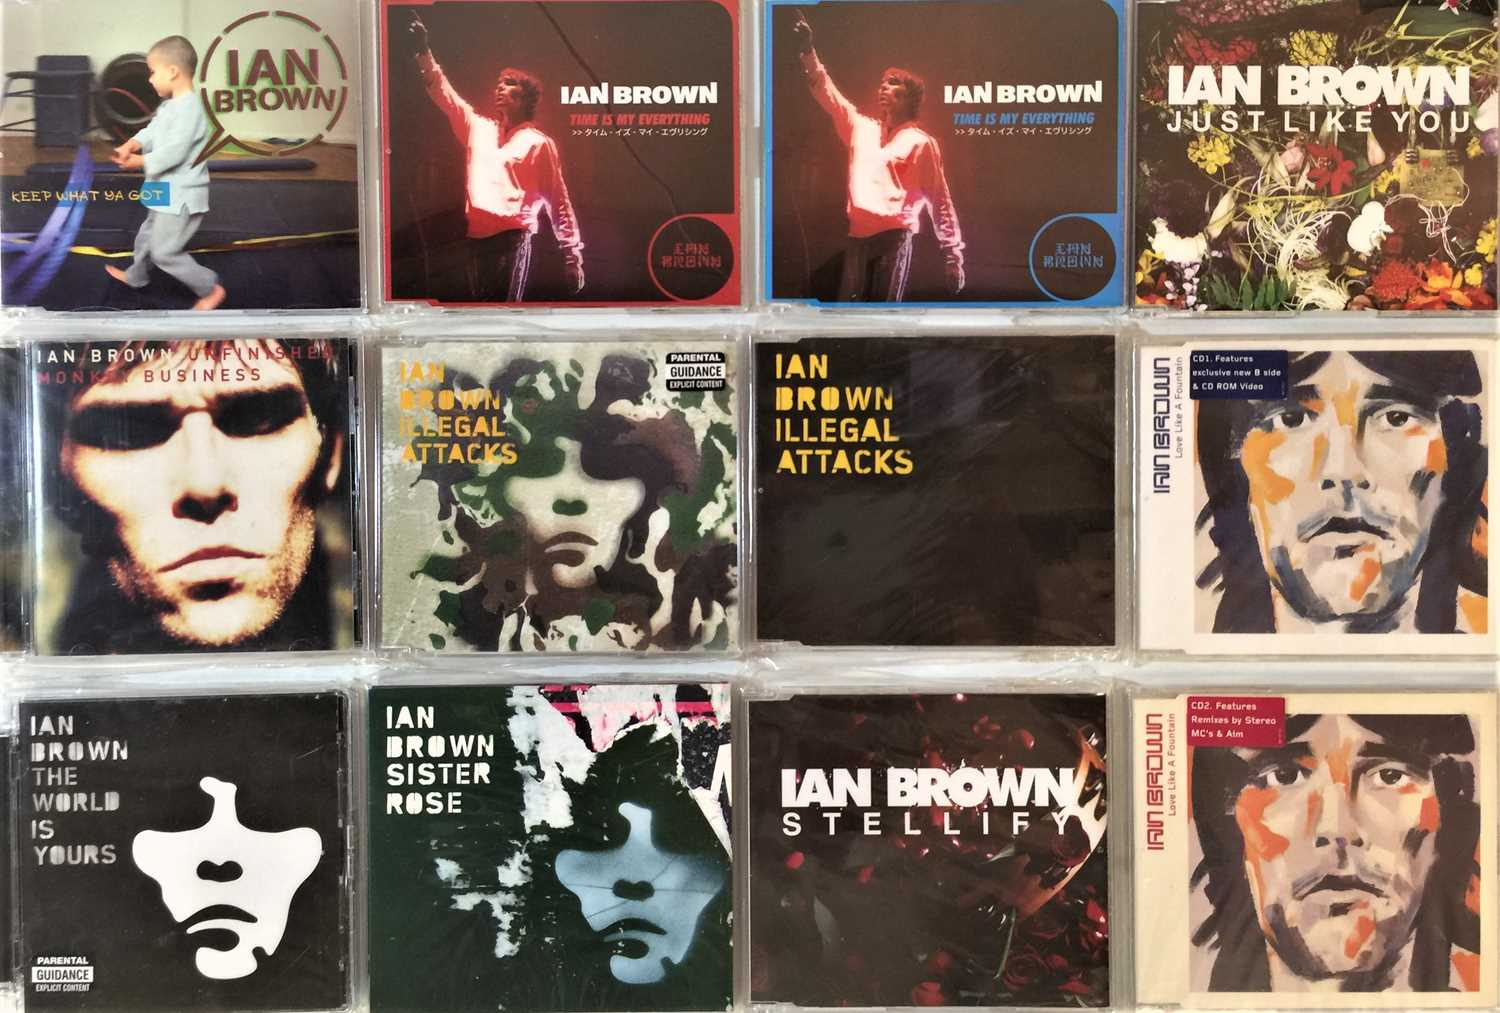 IAN BROWN & RELATED - CD COLLECTION - Image 2 of 2